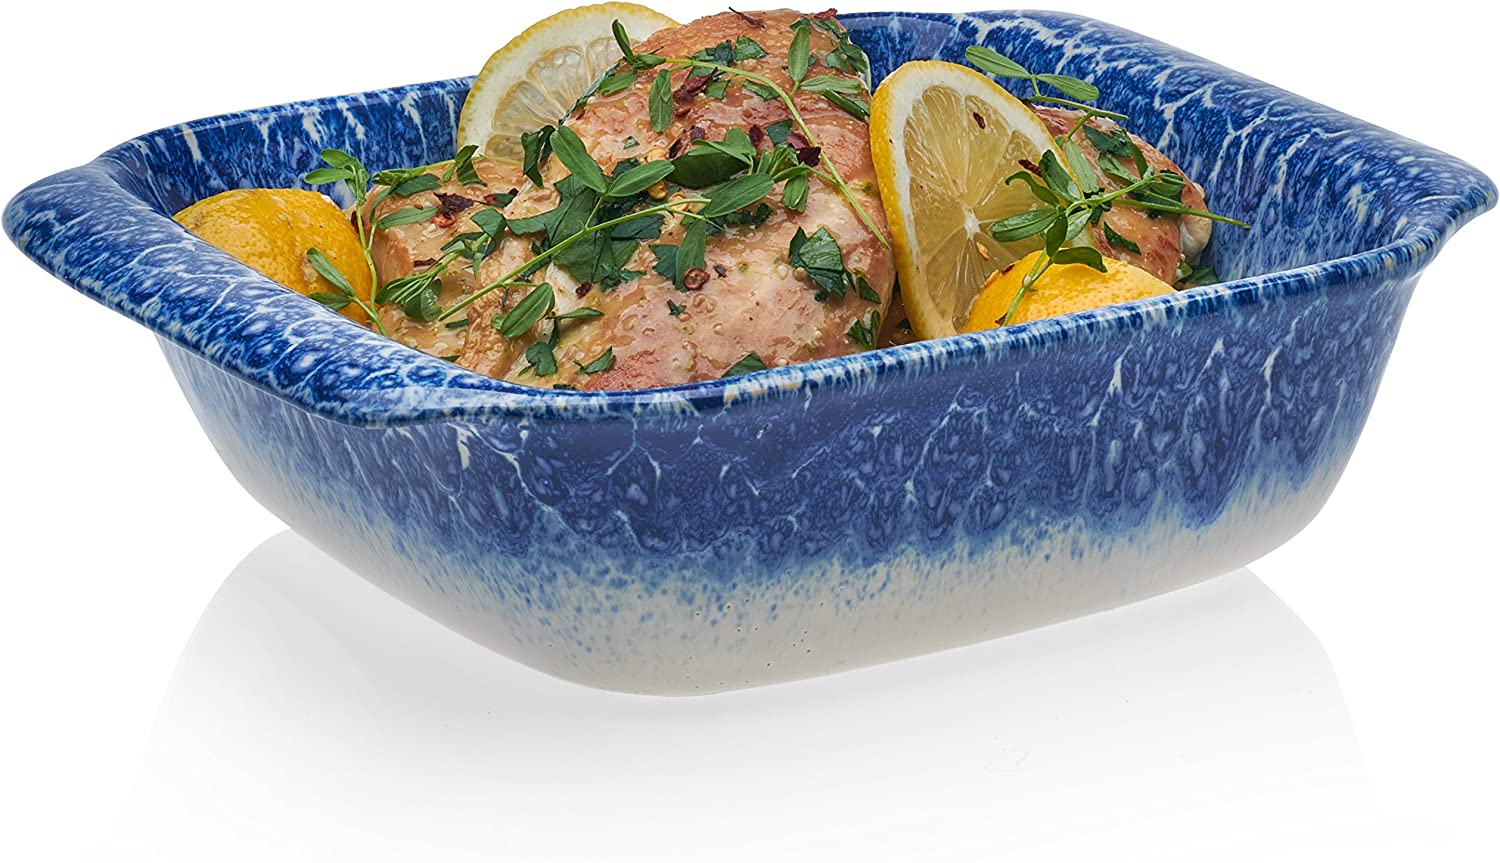 Libbey Artisan Square Stoneware Bake Dish, 8-inch by 8-inch